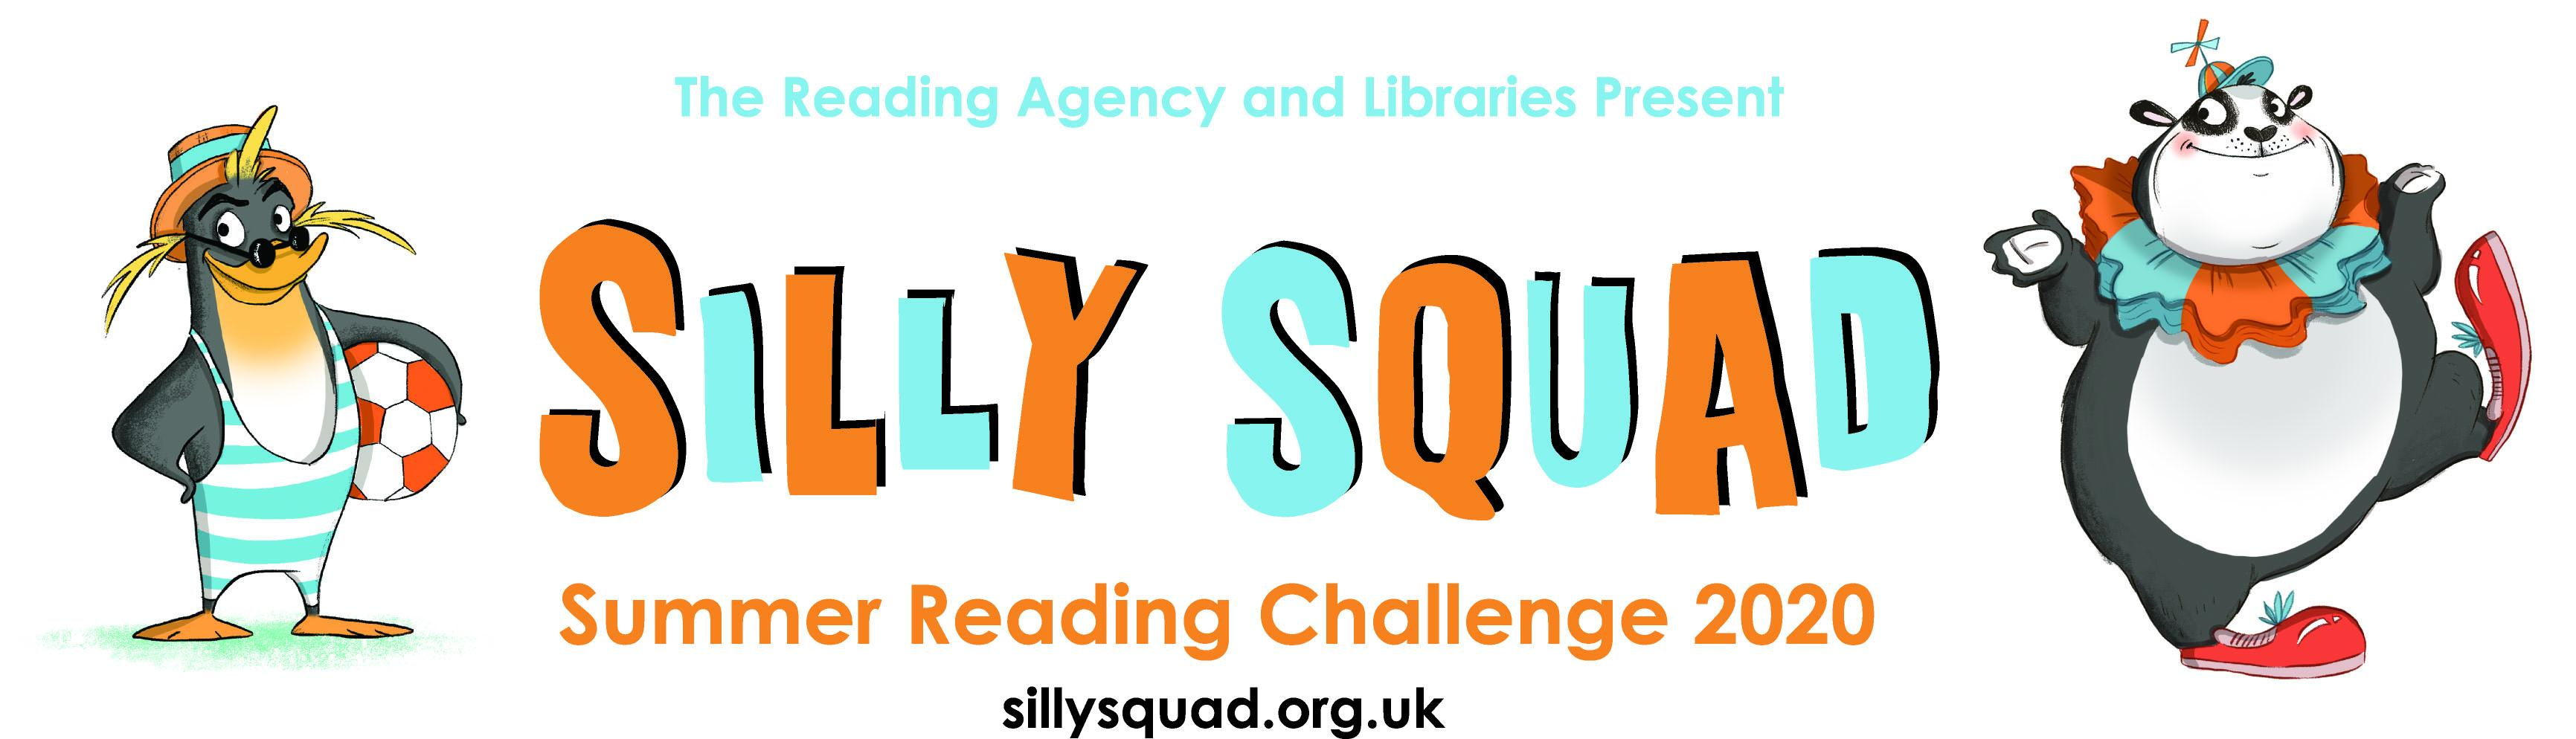 The brightly coloured Silly Squad logo for this year's Summer Reading Challenge. It features a panda.